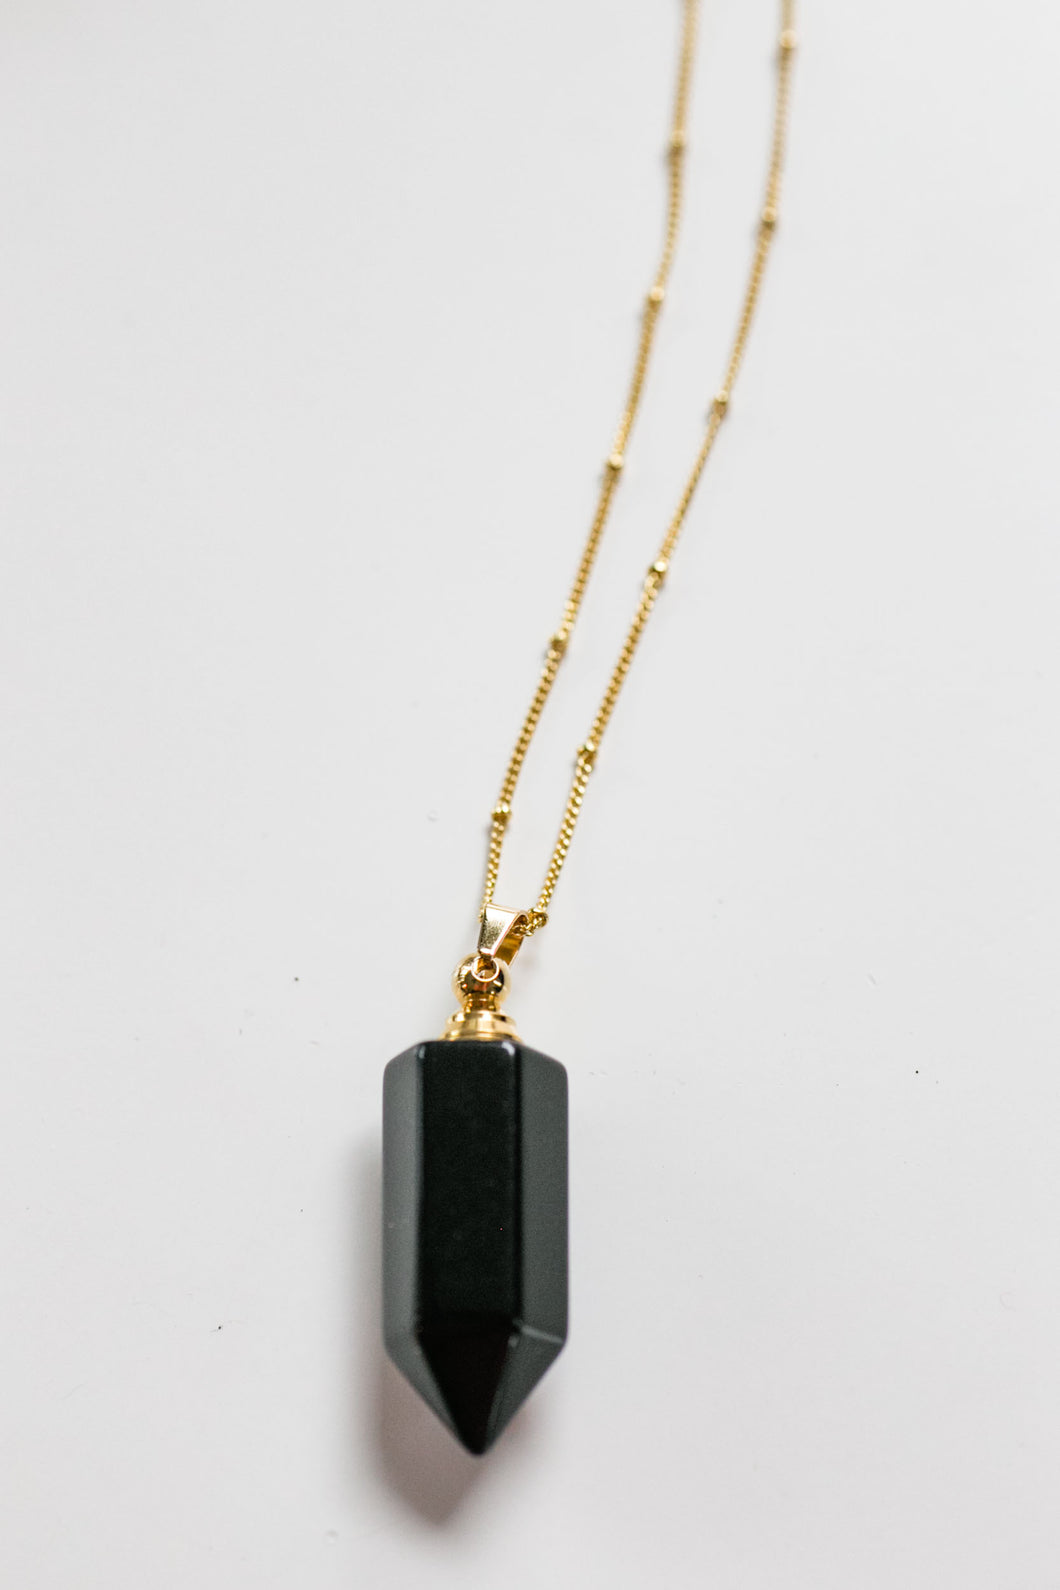 obsidian essential oil vial necklace